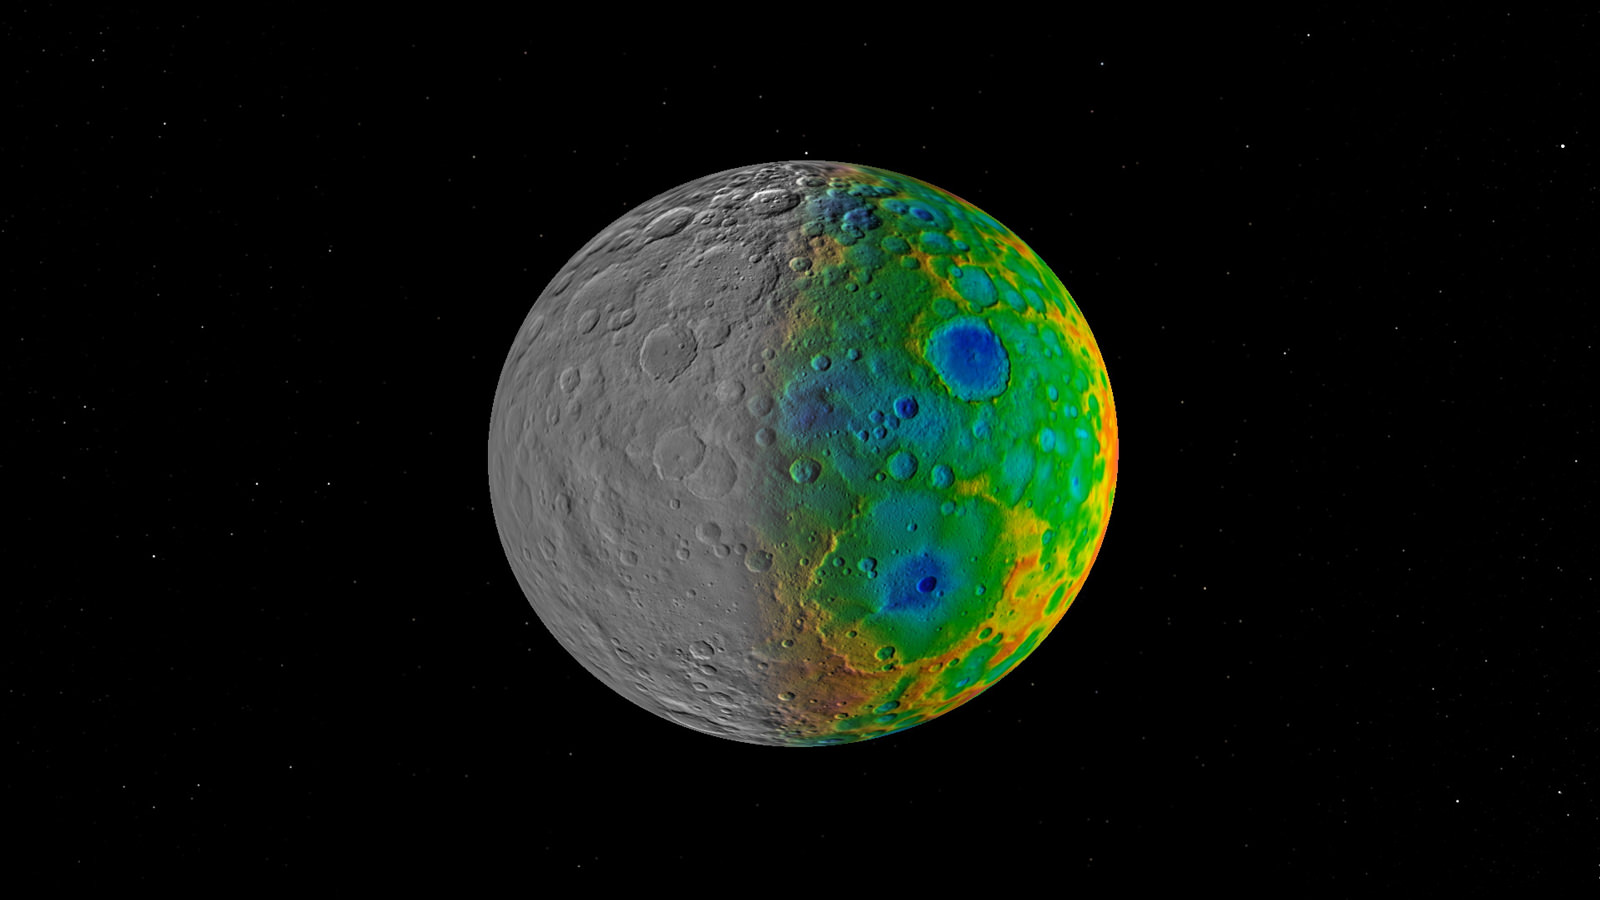 Large Impact Craters on Ceres Have Gone Missing - Universe ...